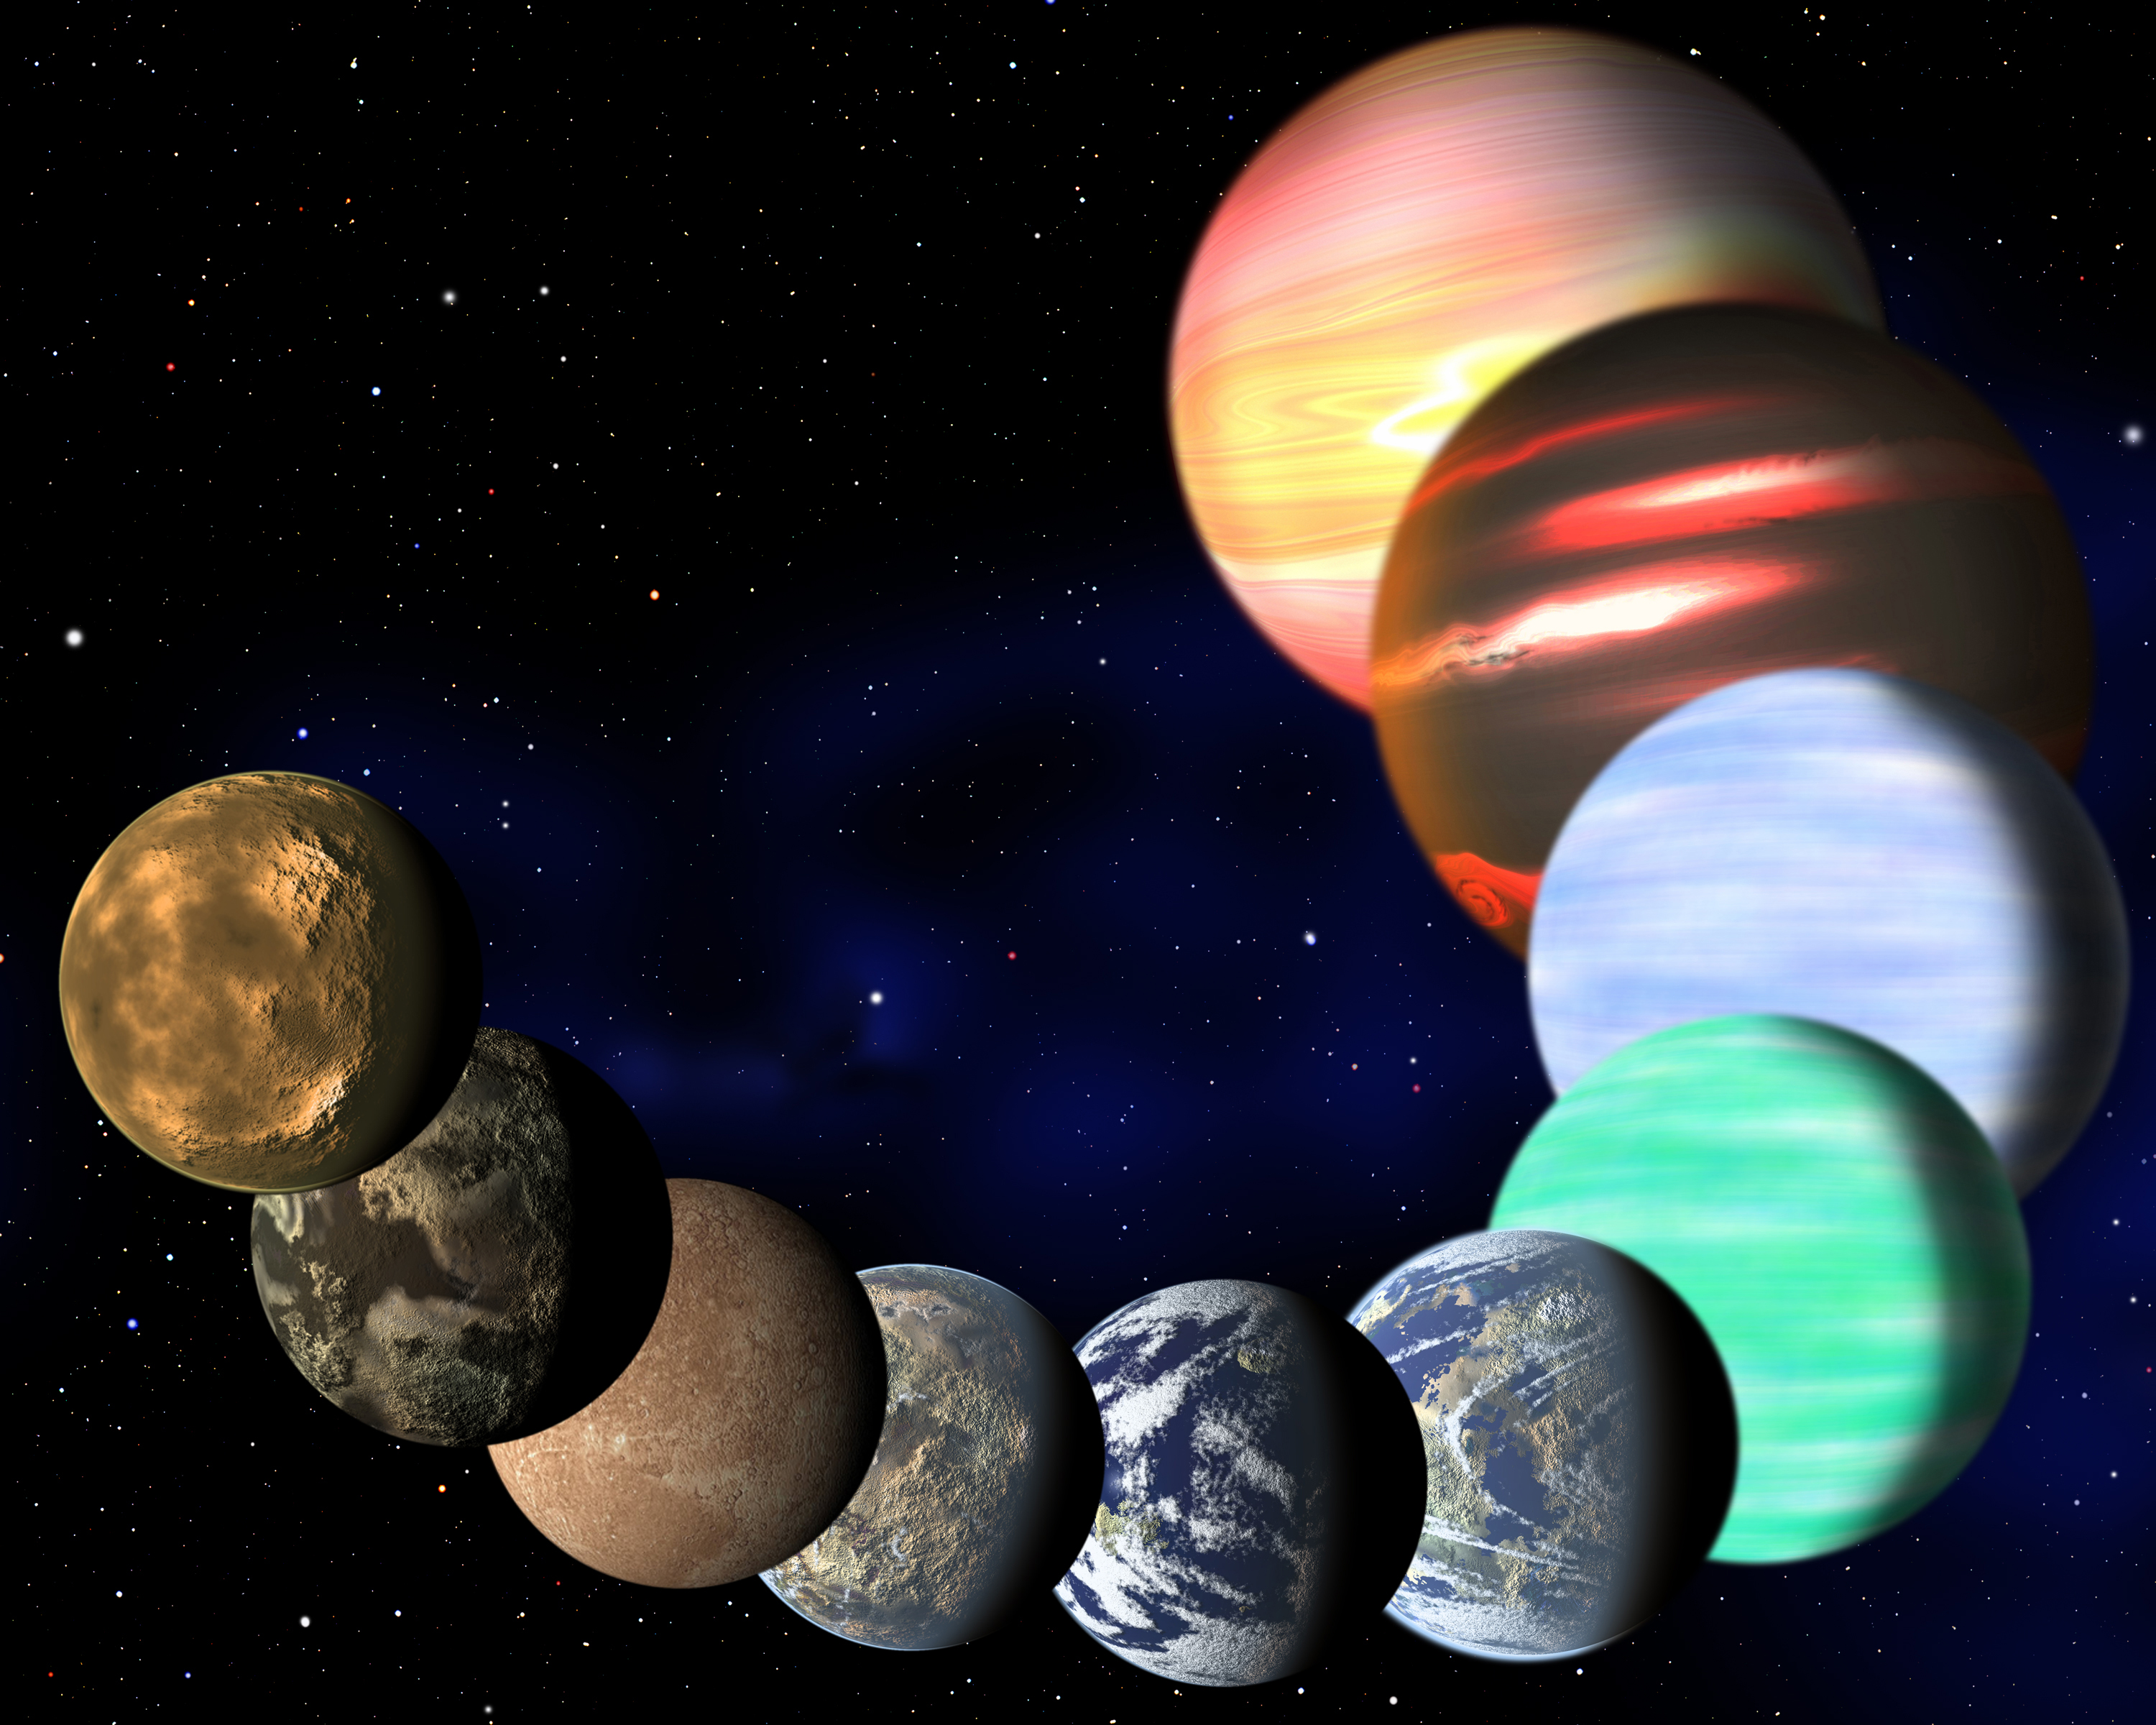 An image of a variety of exoplanets